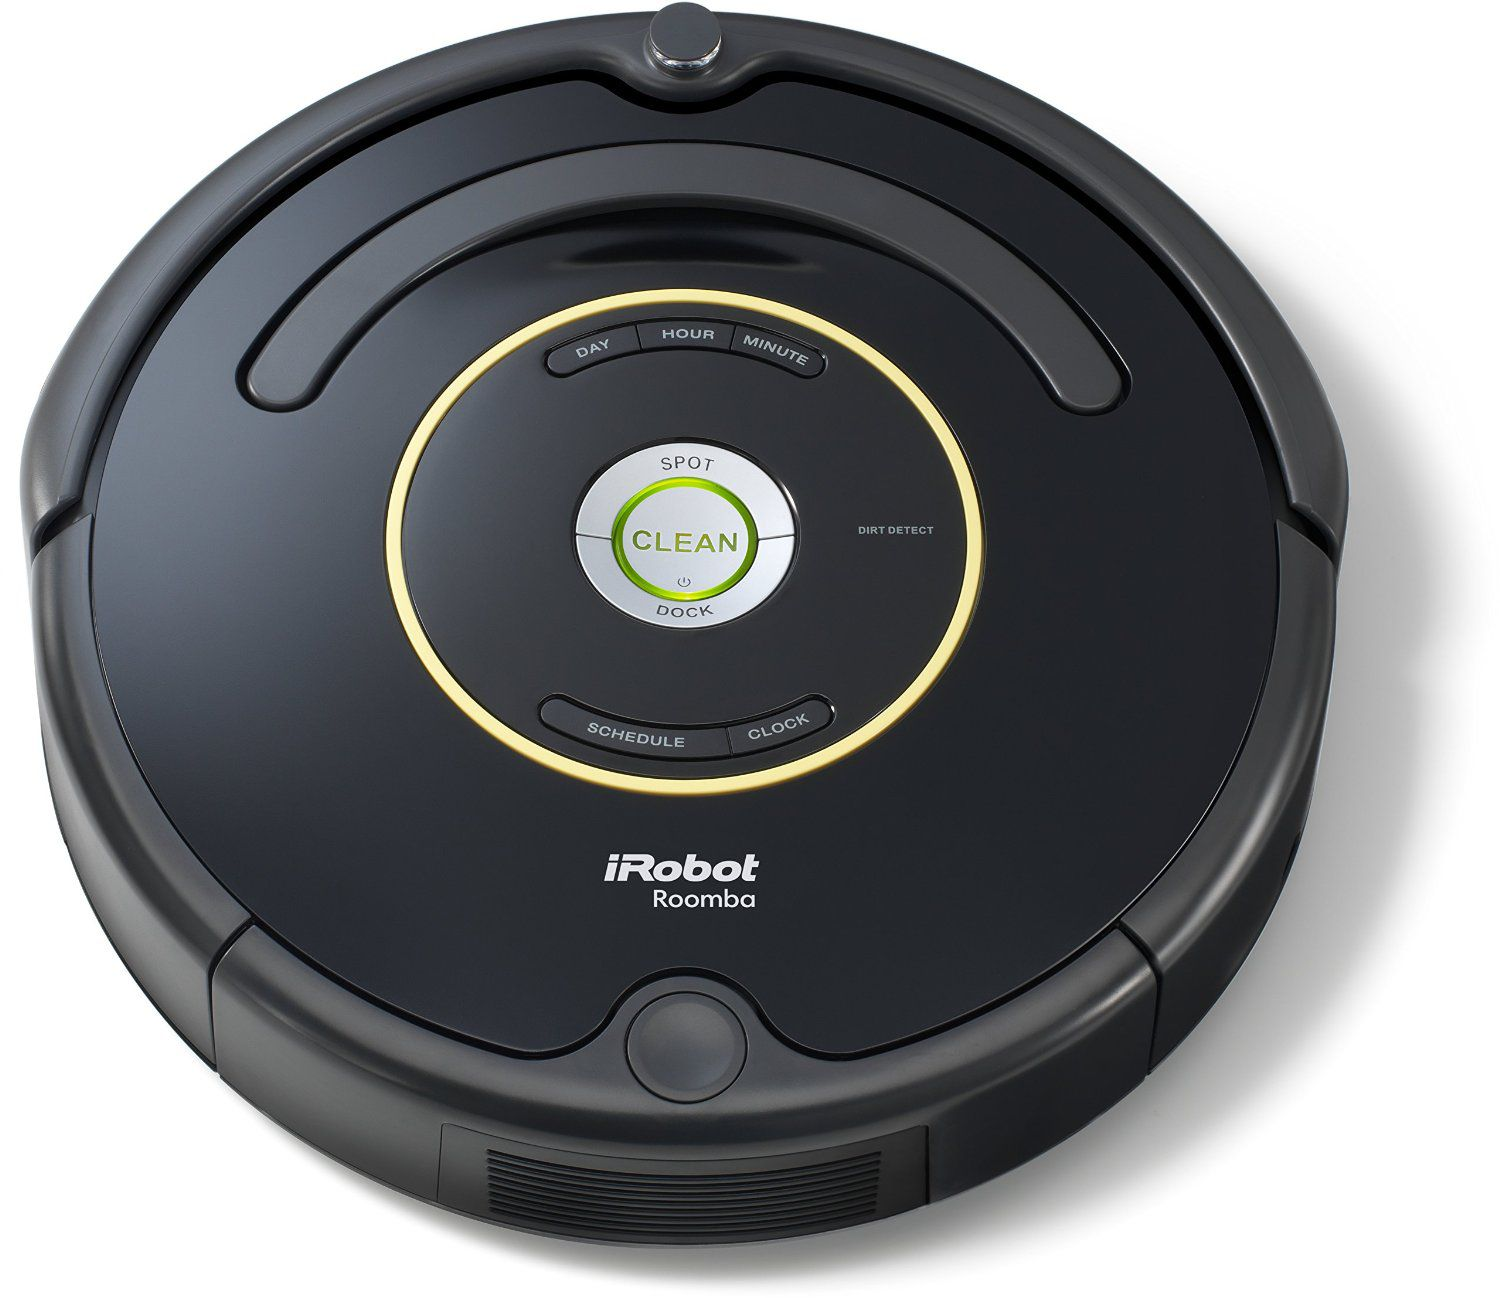 irobot roomba 650 robot aspirateur autonome pour une. Black Bedroom Furniture Sets. Home Design Ideas